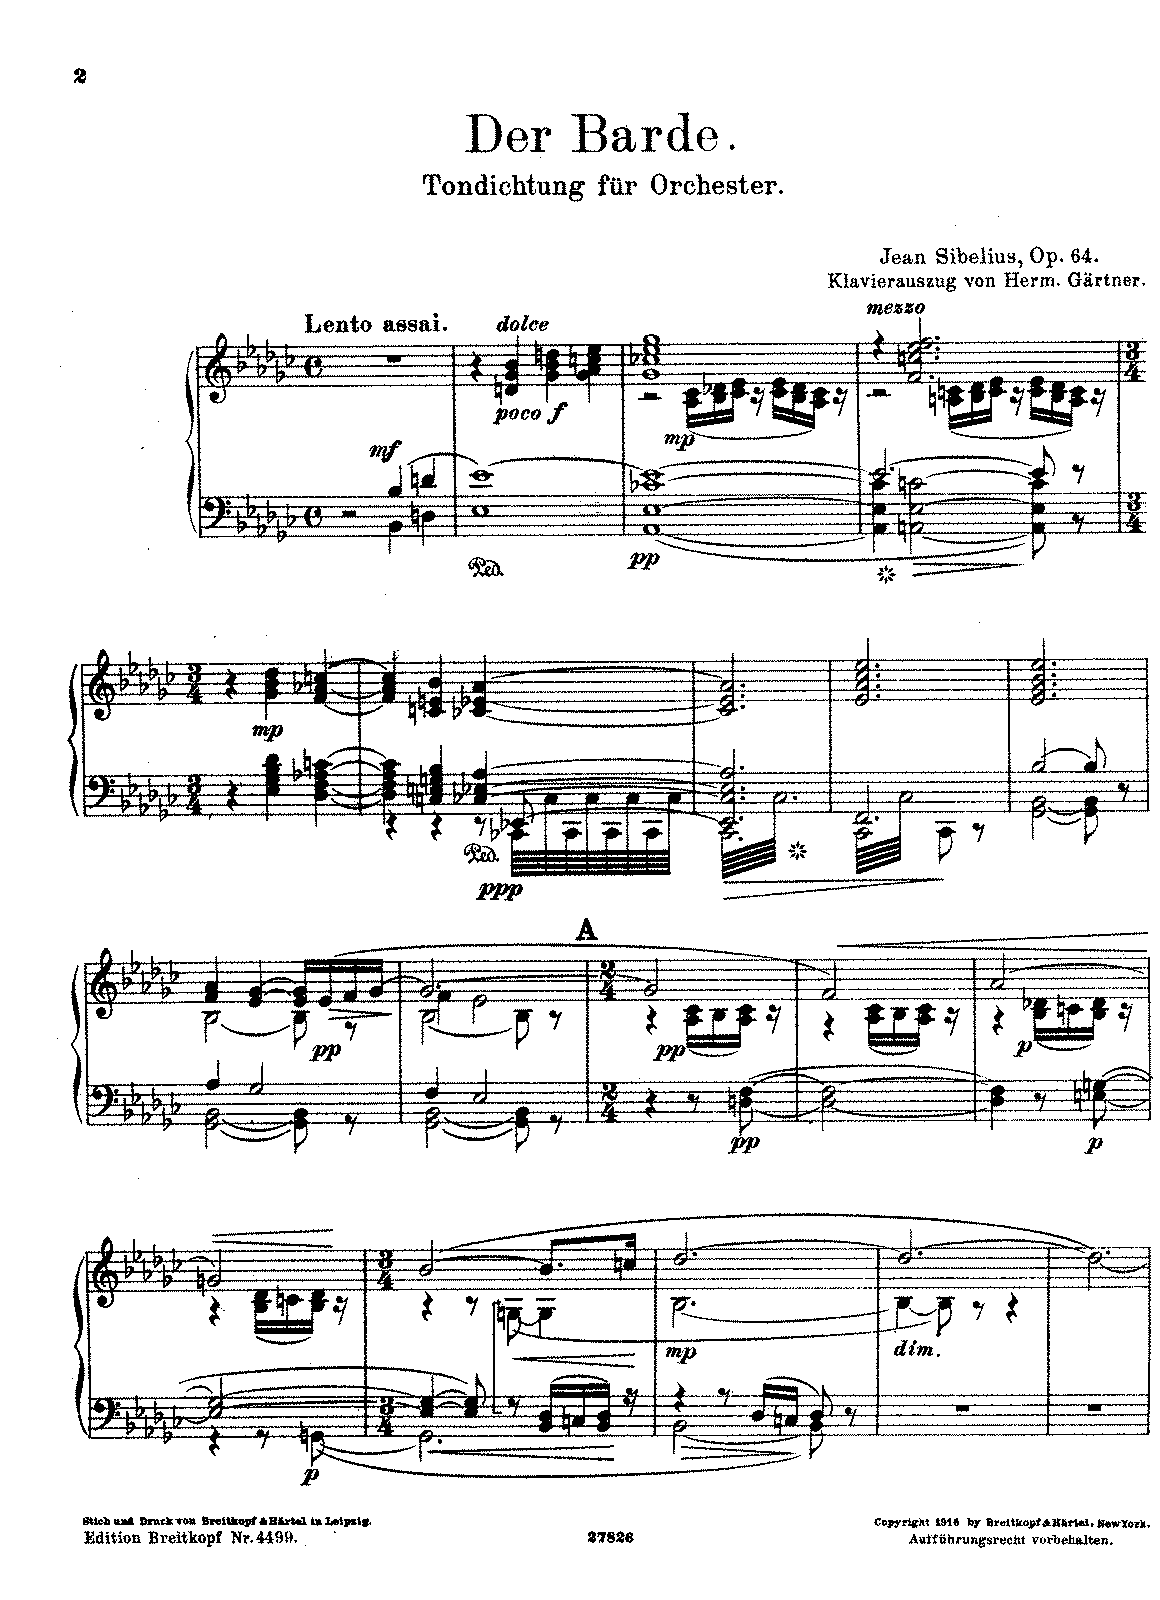 Sibelius - The Bard, Op.64 (trans. Gärtner - piano).pdf